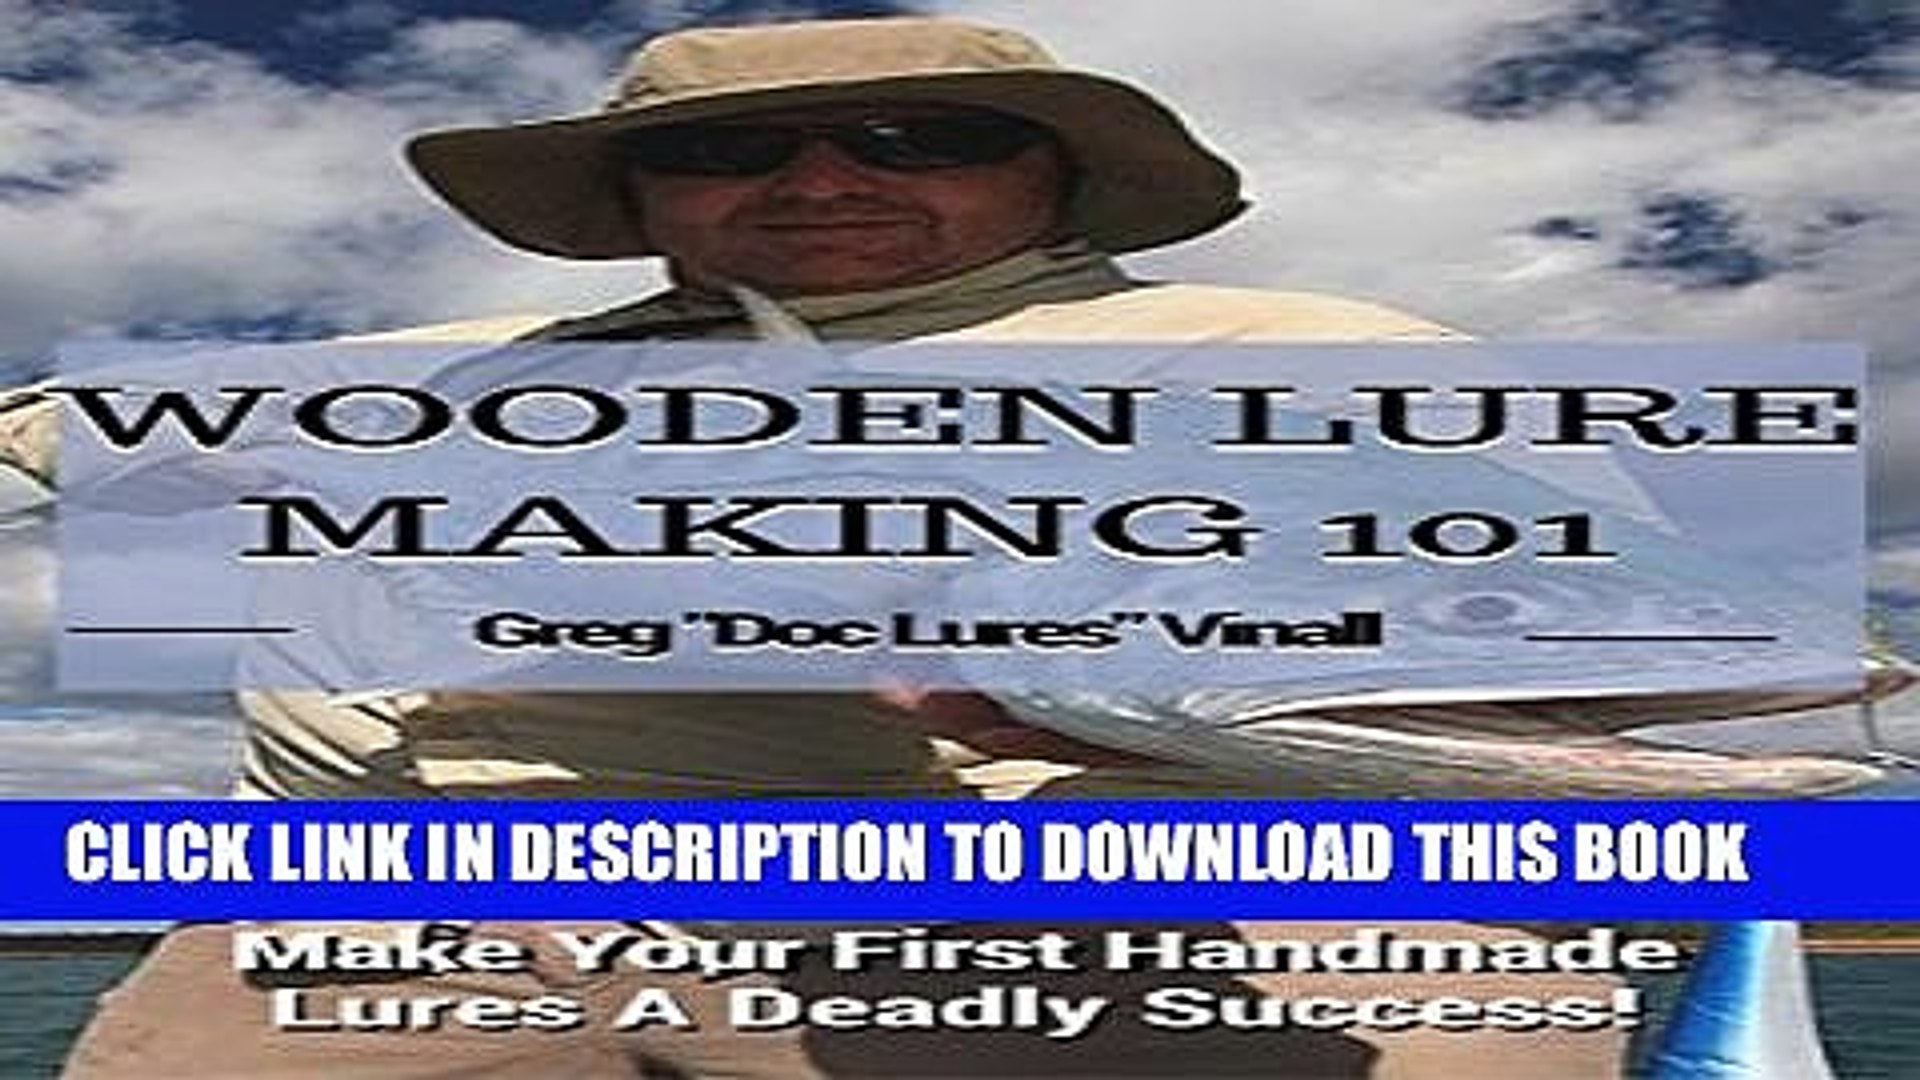 Pdf Wooden Lure Making 101 Make Your First Handmade Lures Deadly Effective Full Colection